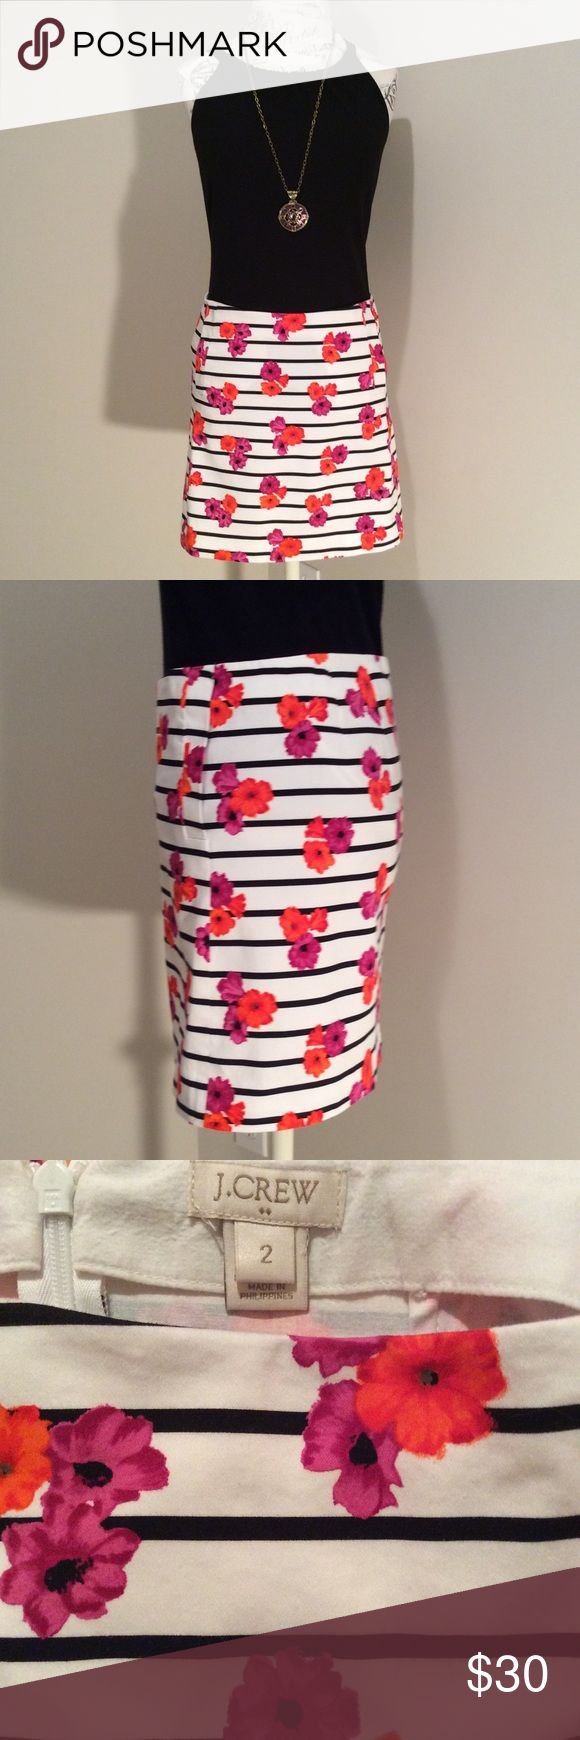 J Crew Factory mini skirt White mini skirt with black horizontal stripes and pink and orange flowers.  Two side pockets. Zips at the back.  Worn only 2-3 times.  Like new.  (Shown with back top, not for sale) J. Crew Factory Skirts Mini